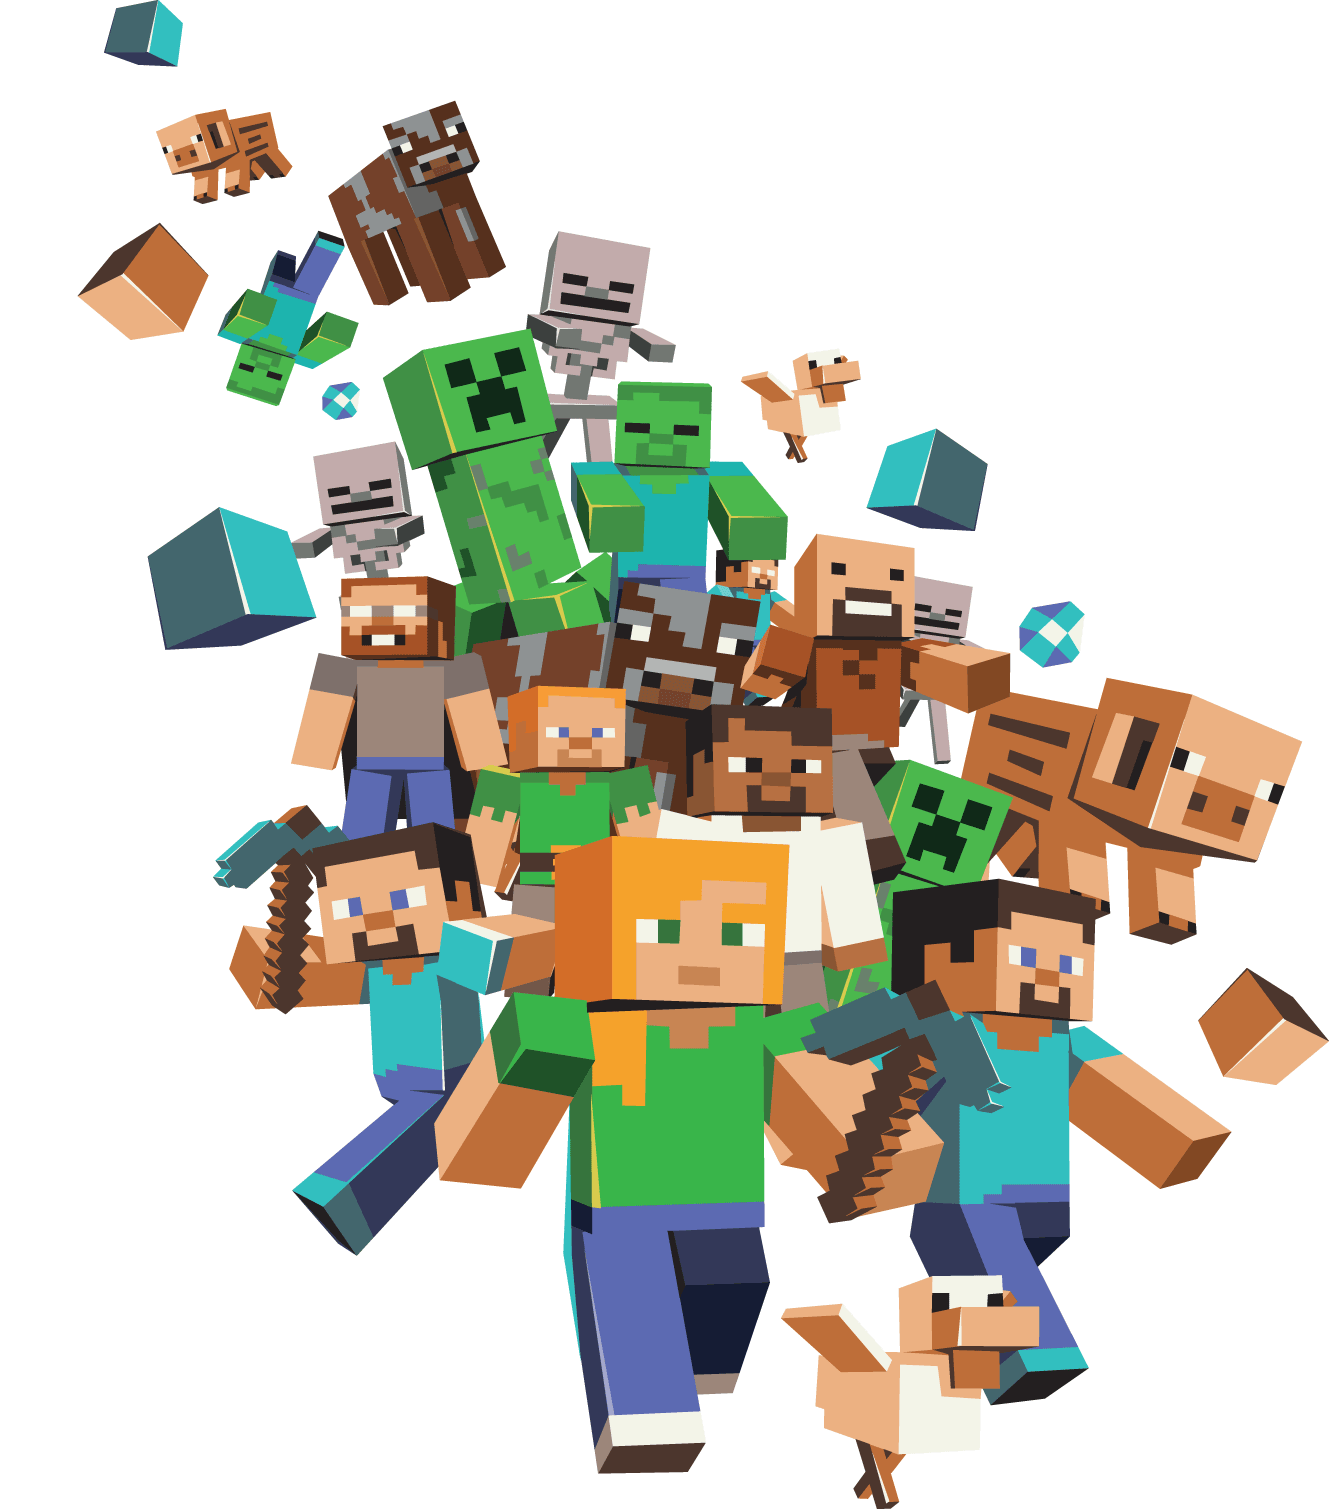 Download Minecraft Characters Png HQ PNG Image | FreePNGImg for Minecraft Characters Pictures  lp00lyp